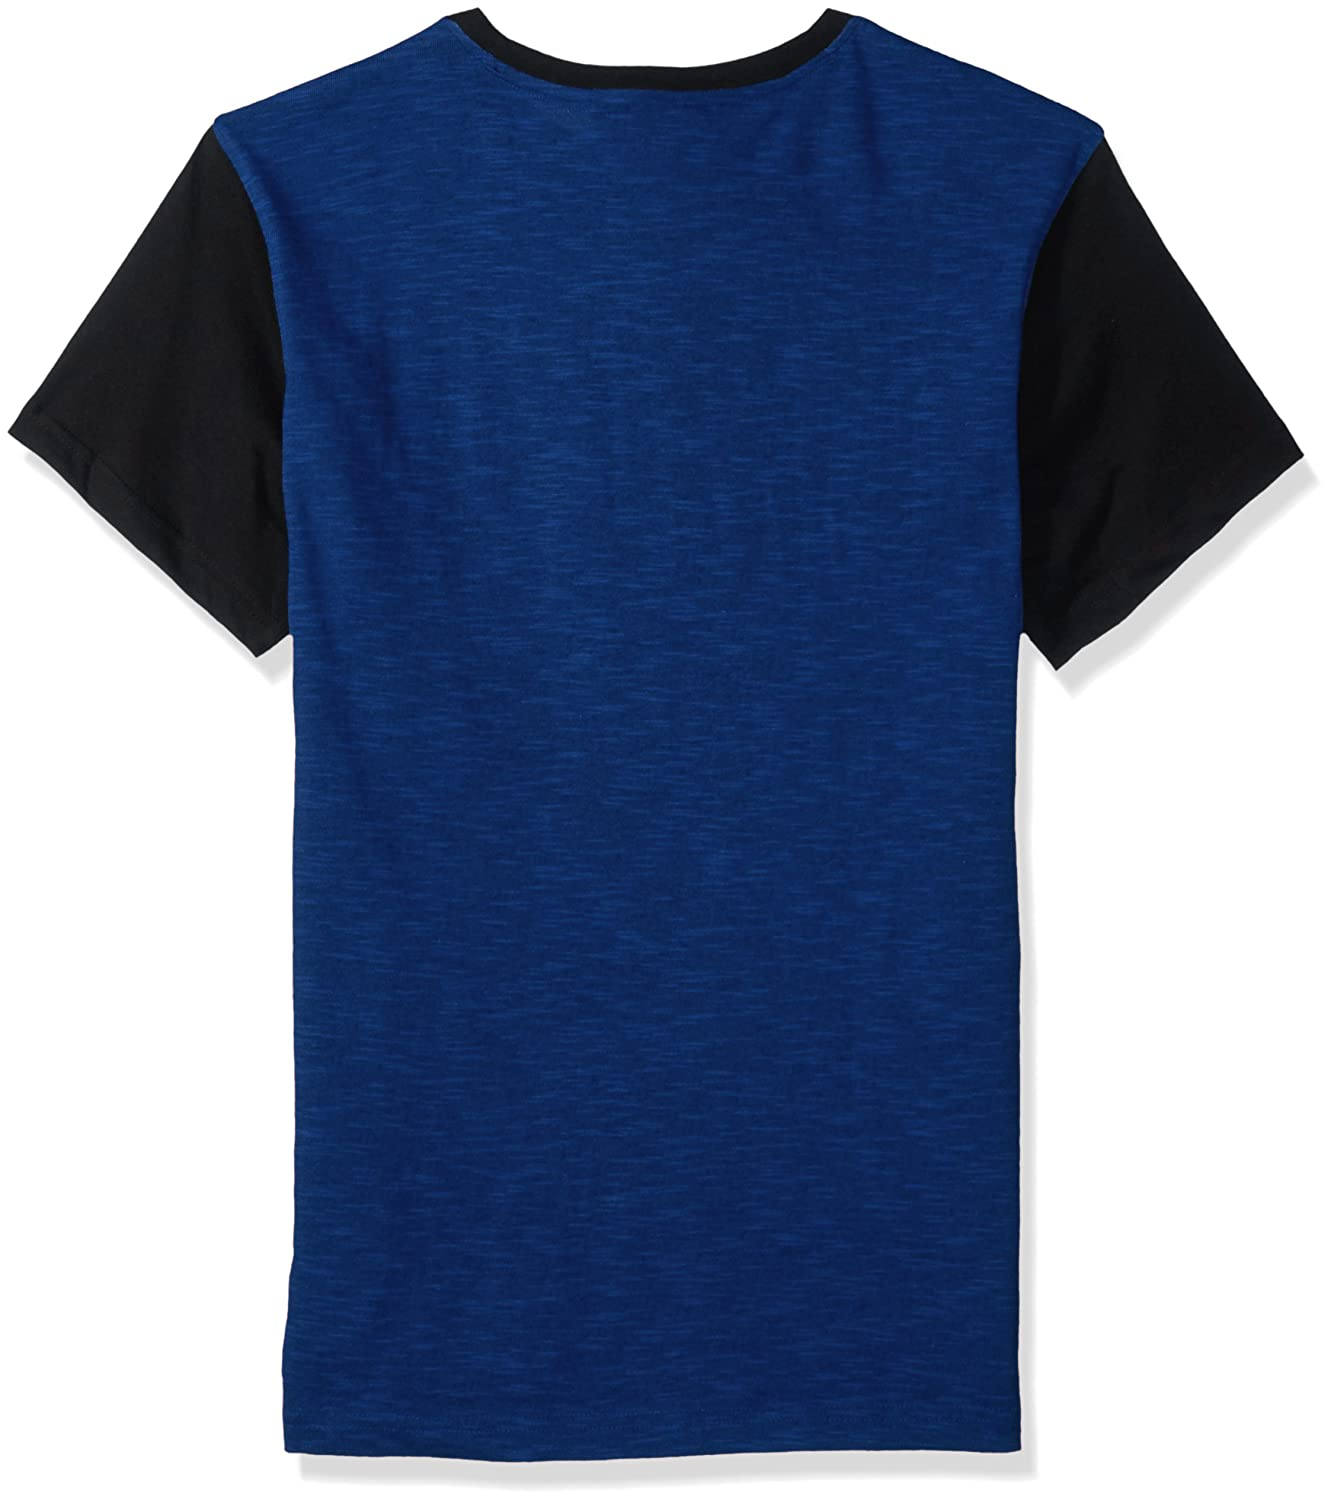 Akademiks Mens Frosted Fashion Tee Shirt